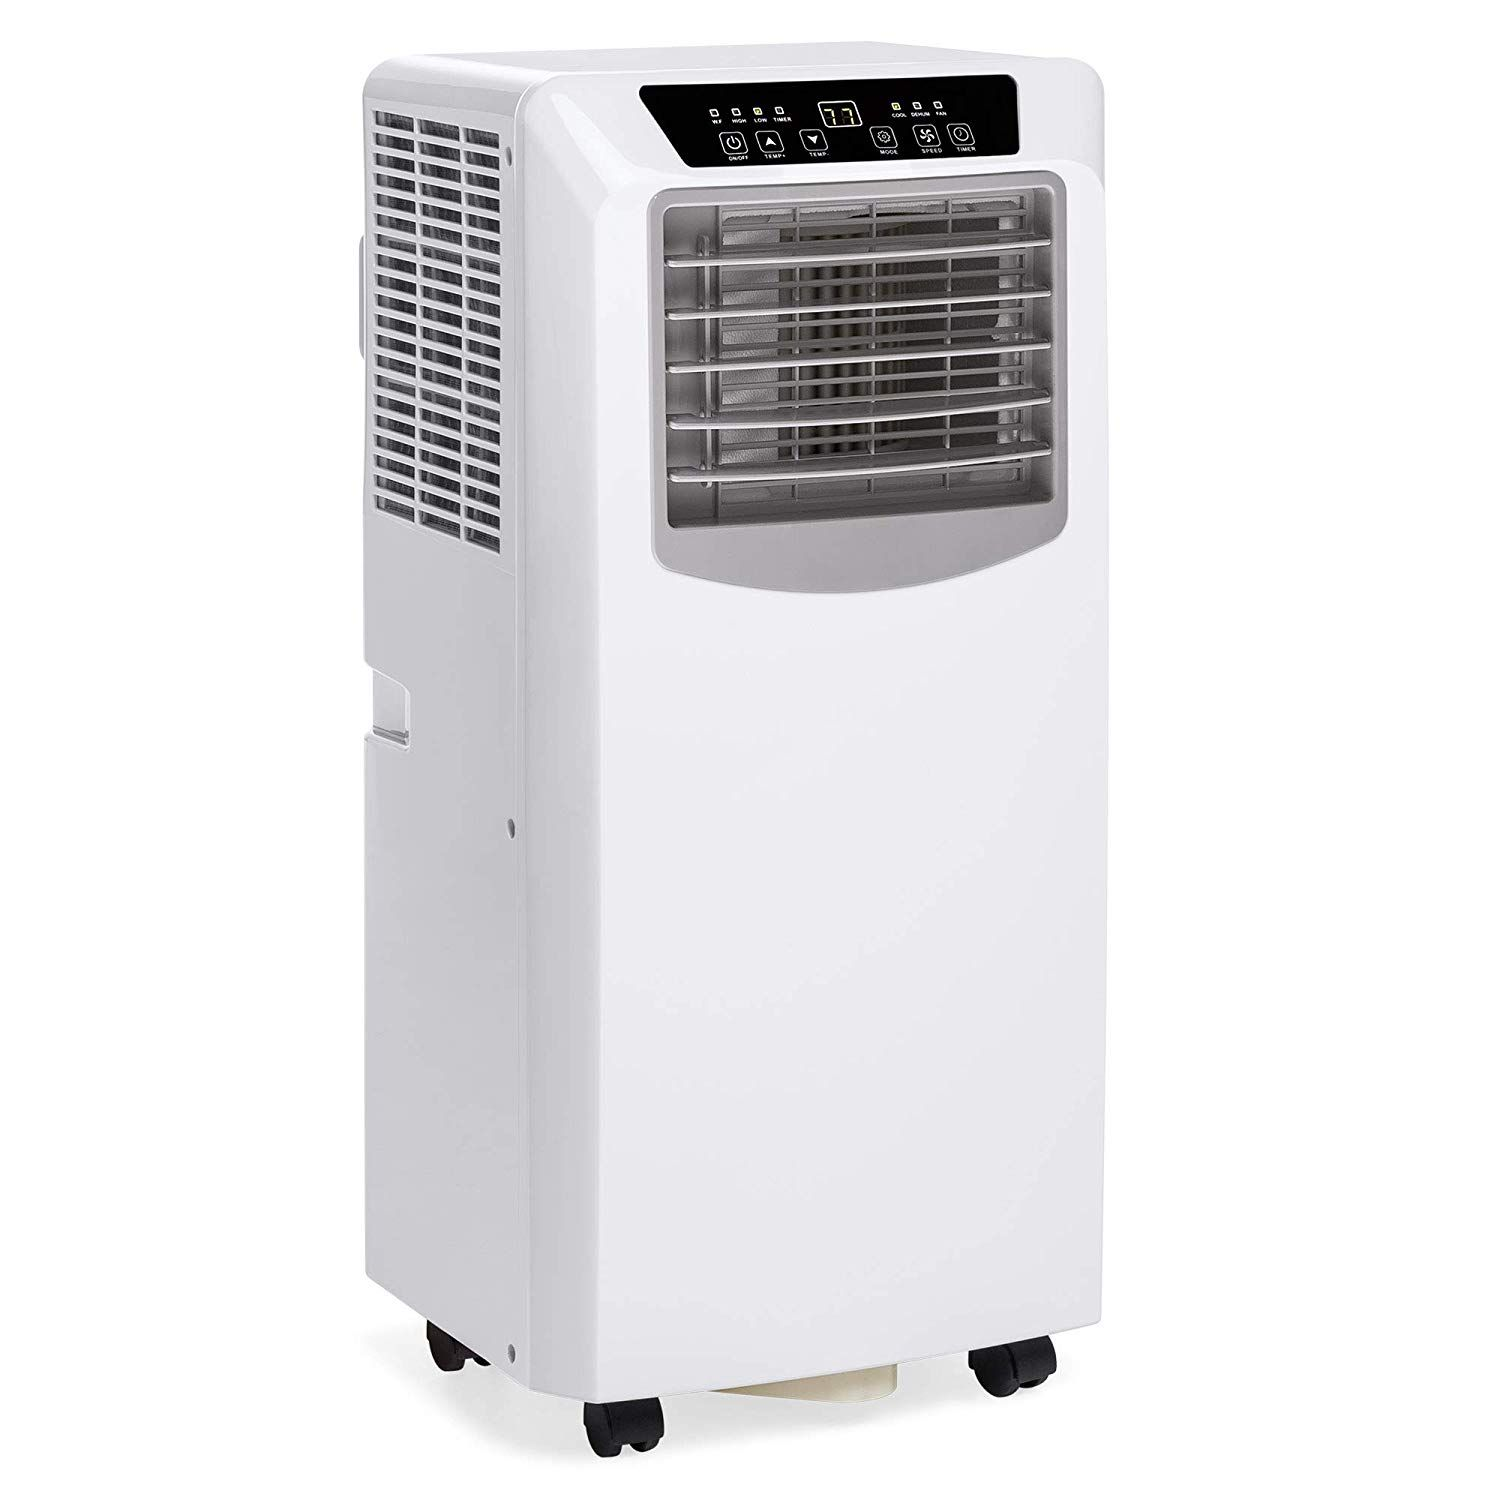 Best Portable Air Conditioners Buyers Guide 2020 — ReviewThis